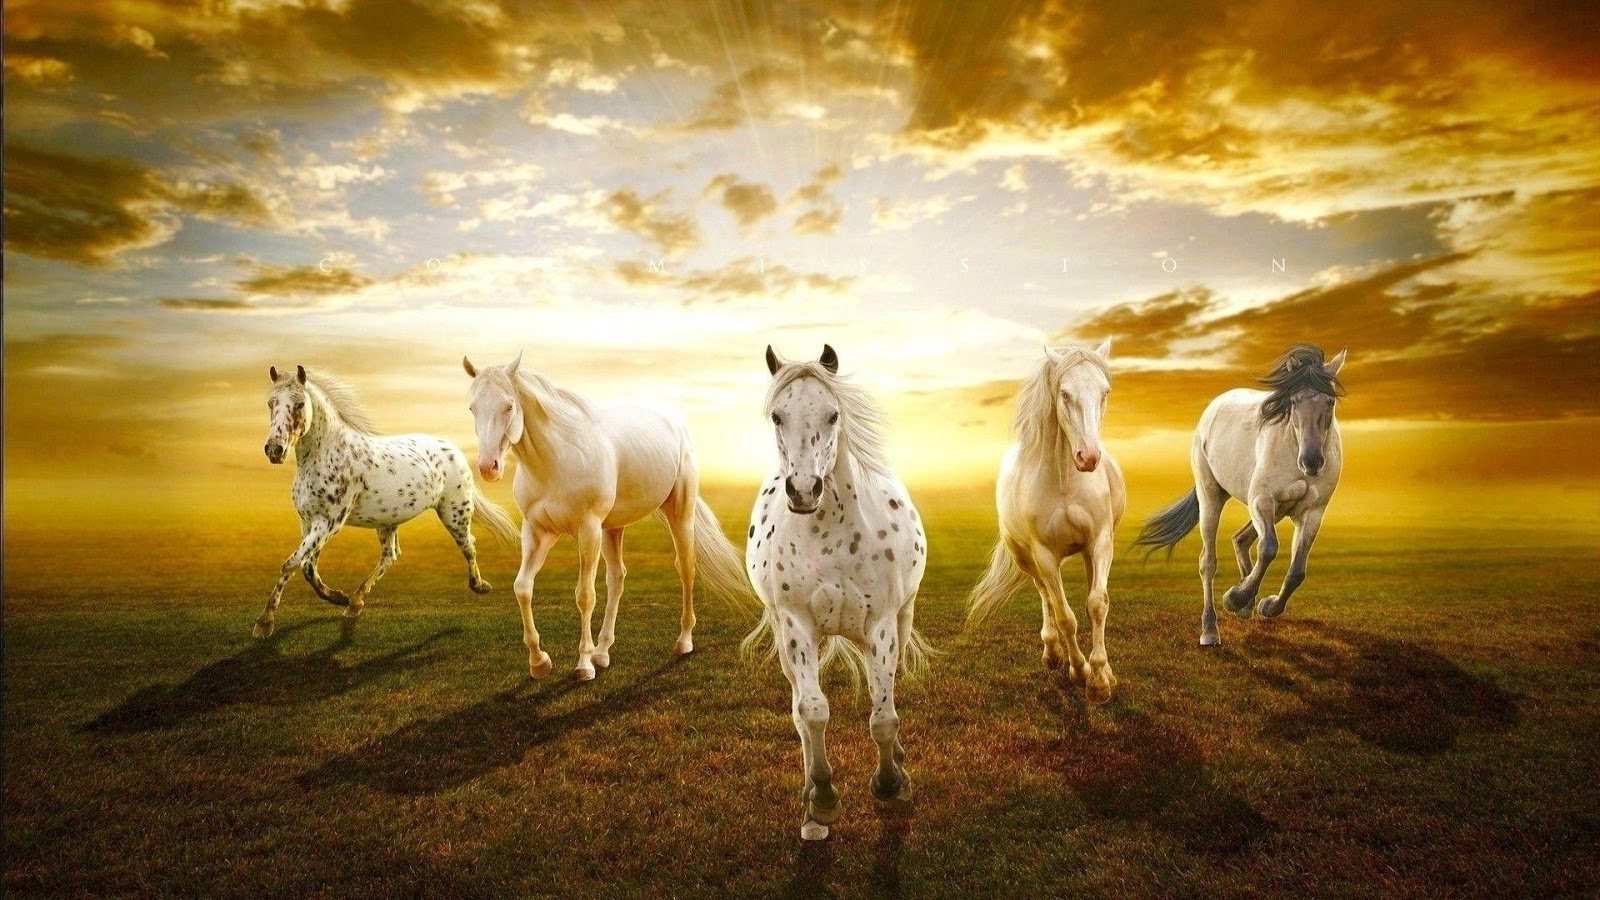 Seven horses wallpaper 7 android apps on google play seven horses wallpaper 7 screenshot altavistaventures Gallery